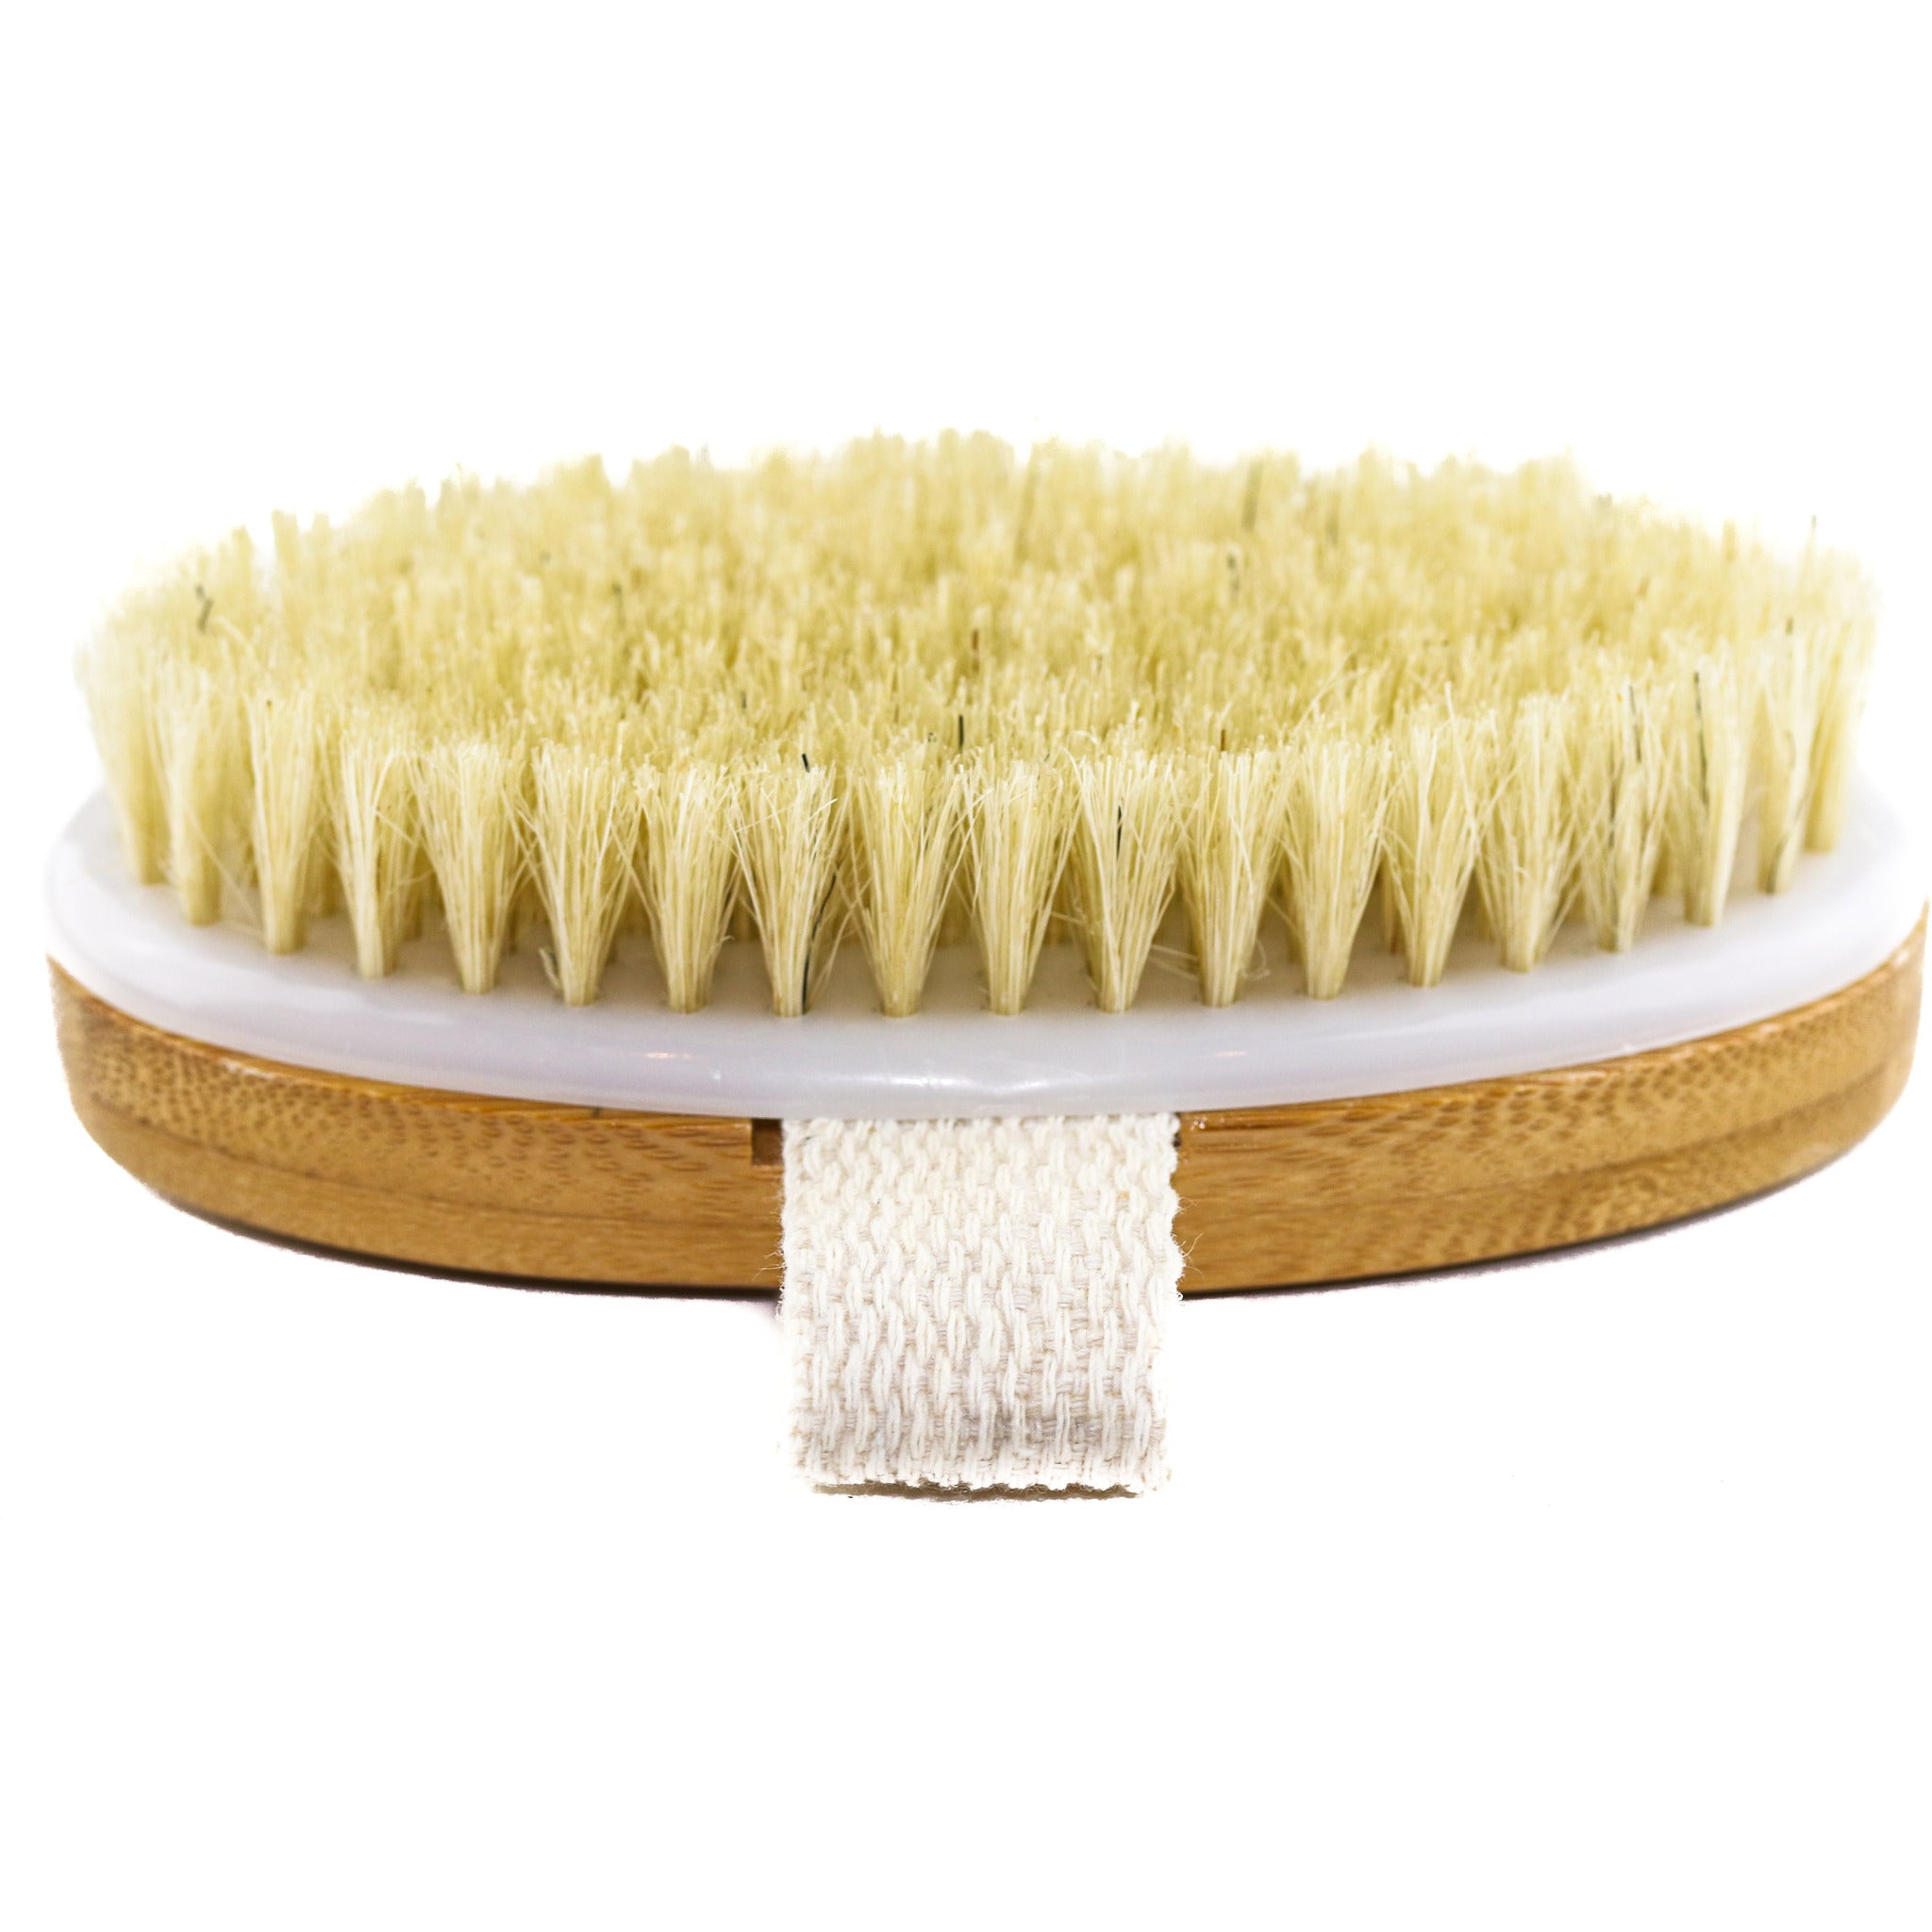 Hand Size Dry Brushing Body Brush Face Foot Leg Exfoliator